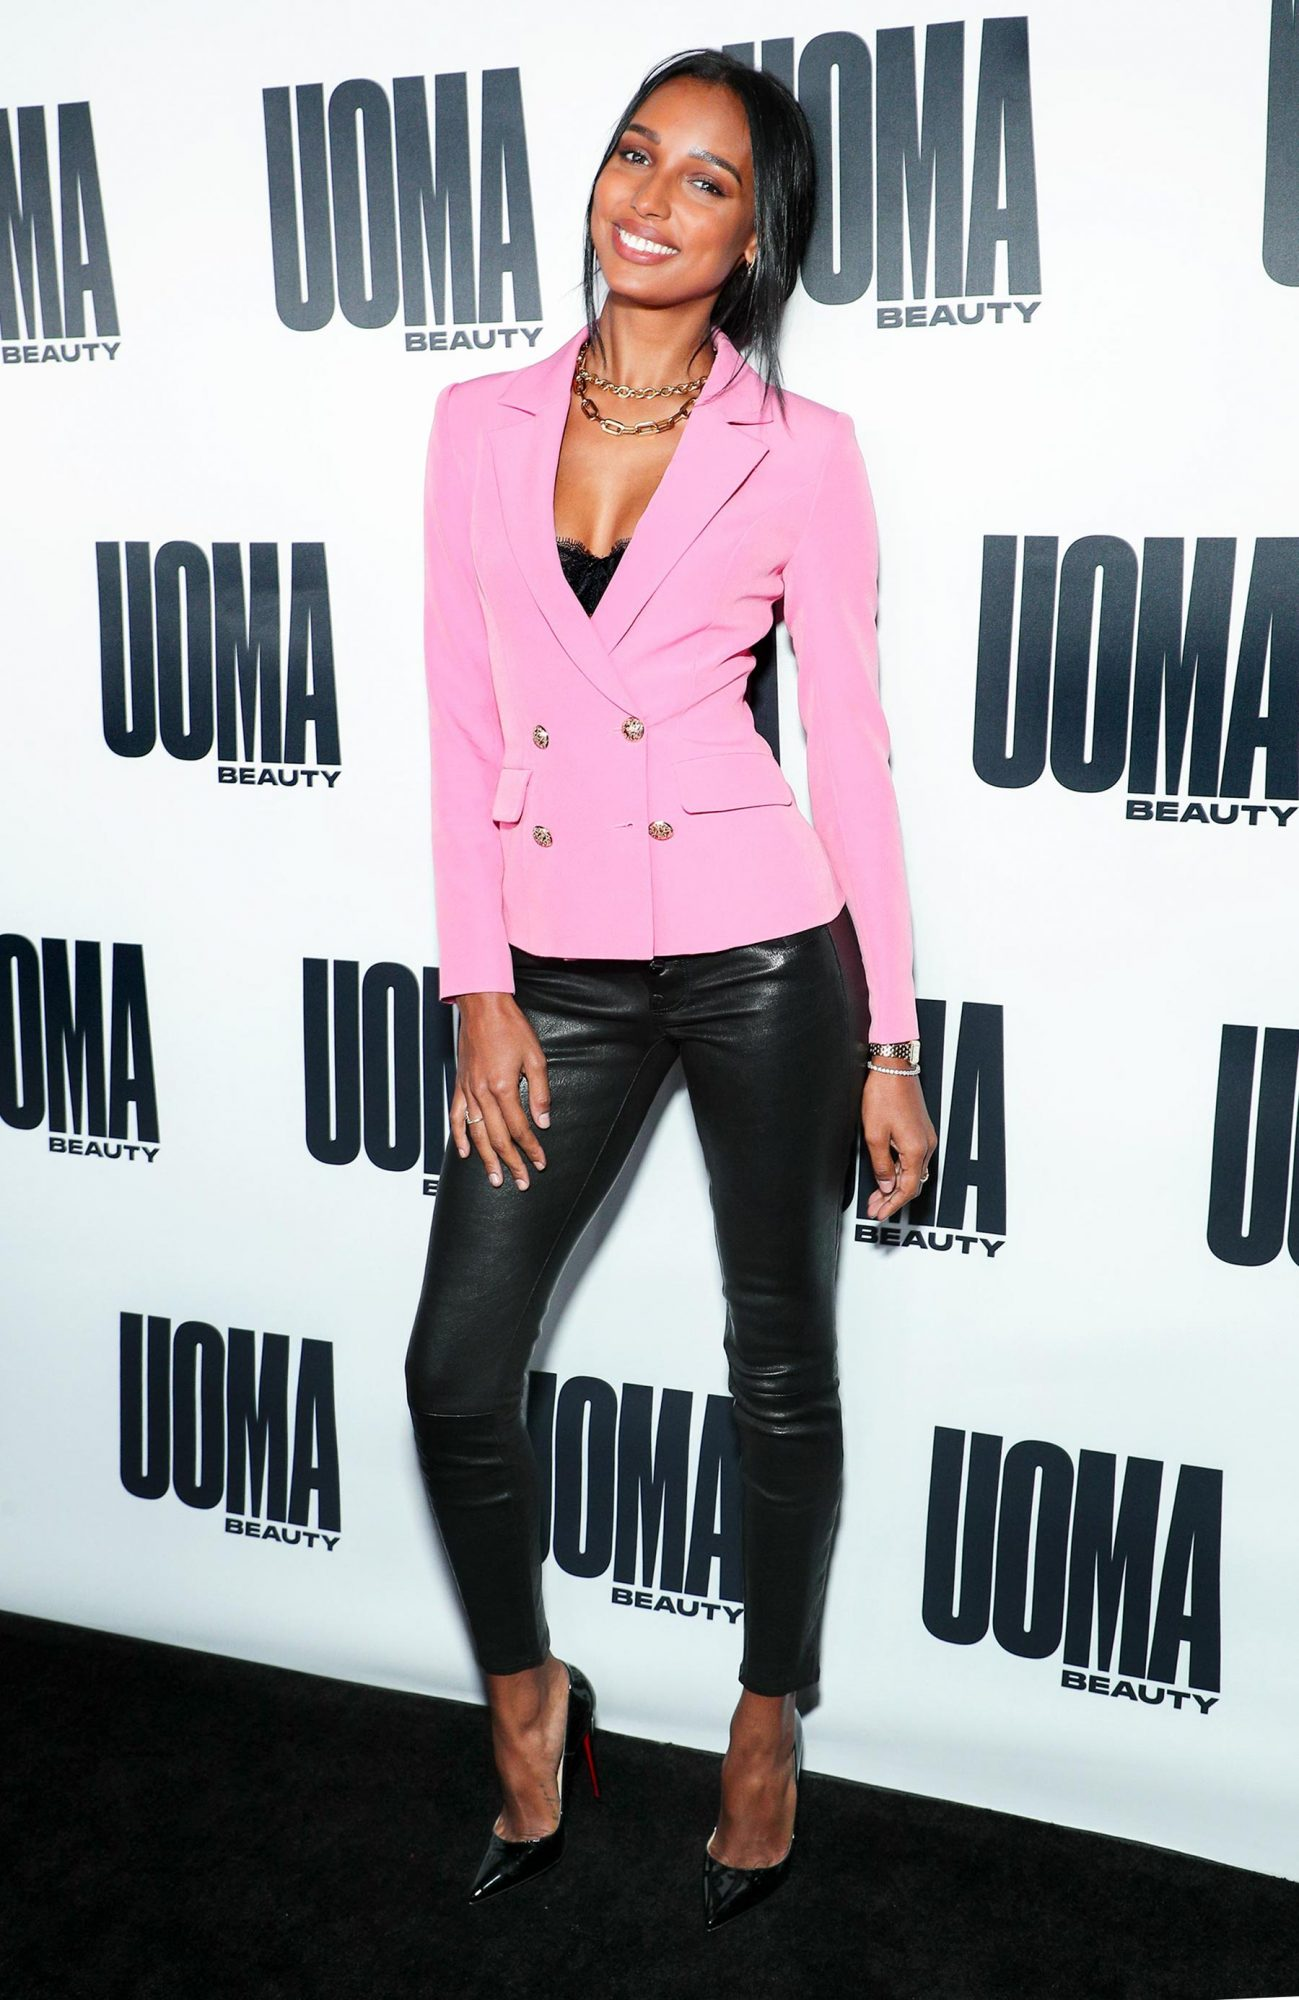 Jasmine Tookes attends launch of Uoma Beauty held at NeueHouse on Thursday (April 25) in Los Angeles. Photo Credit: John Salangsang/BFA.com